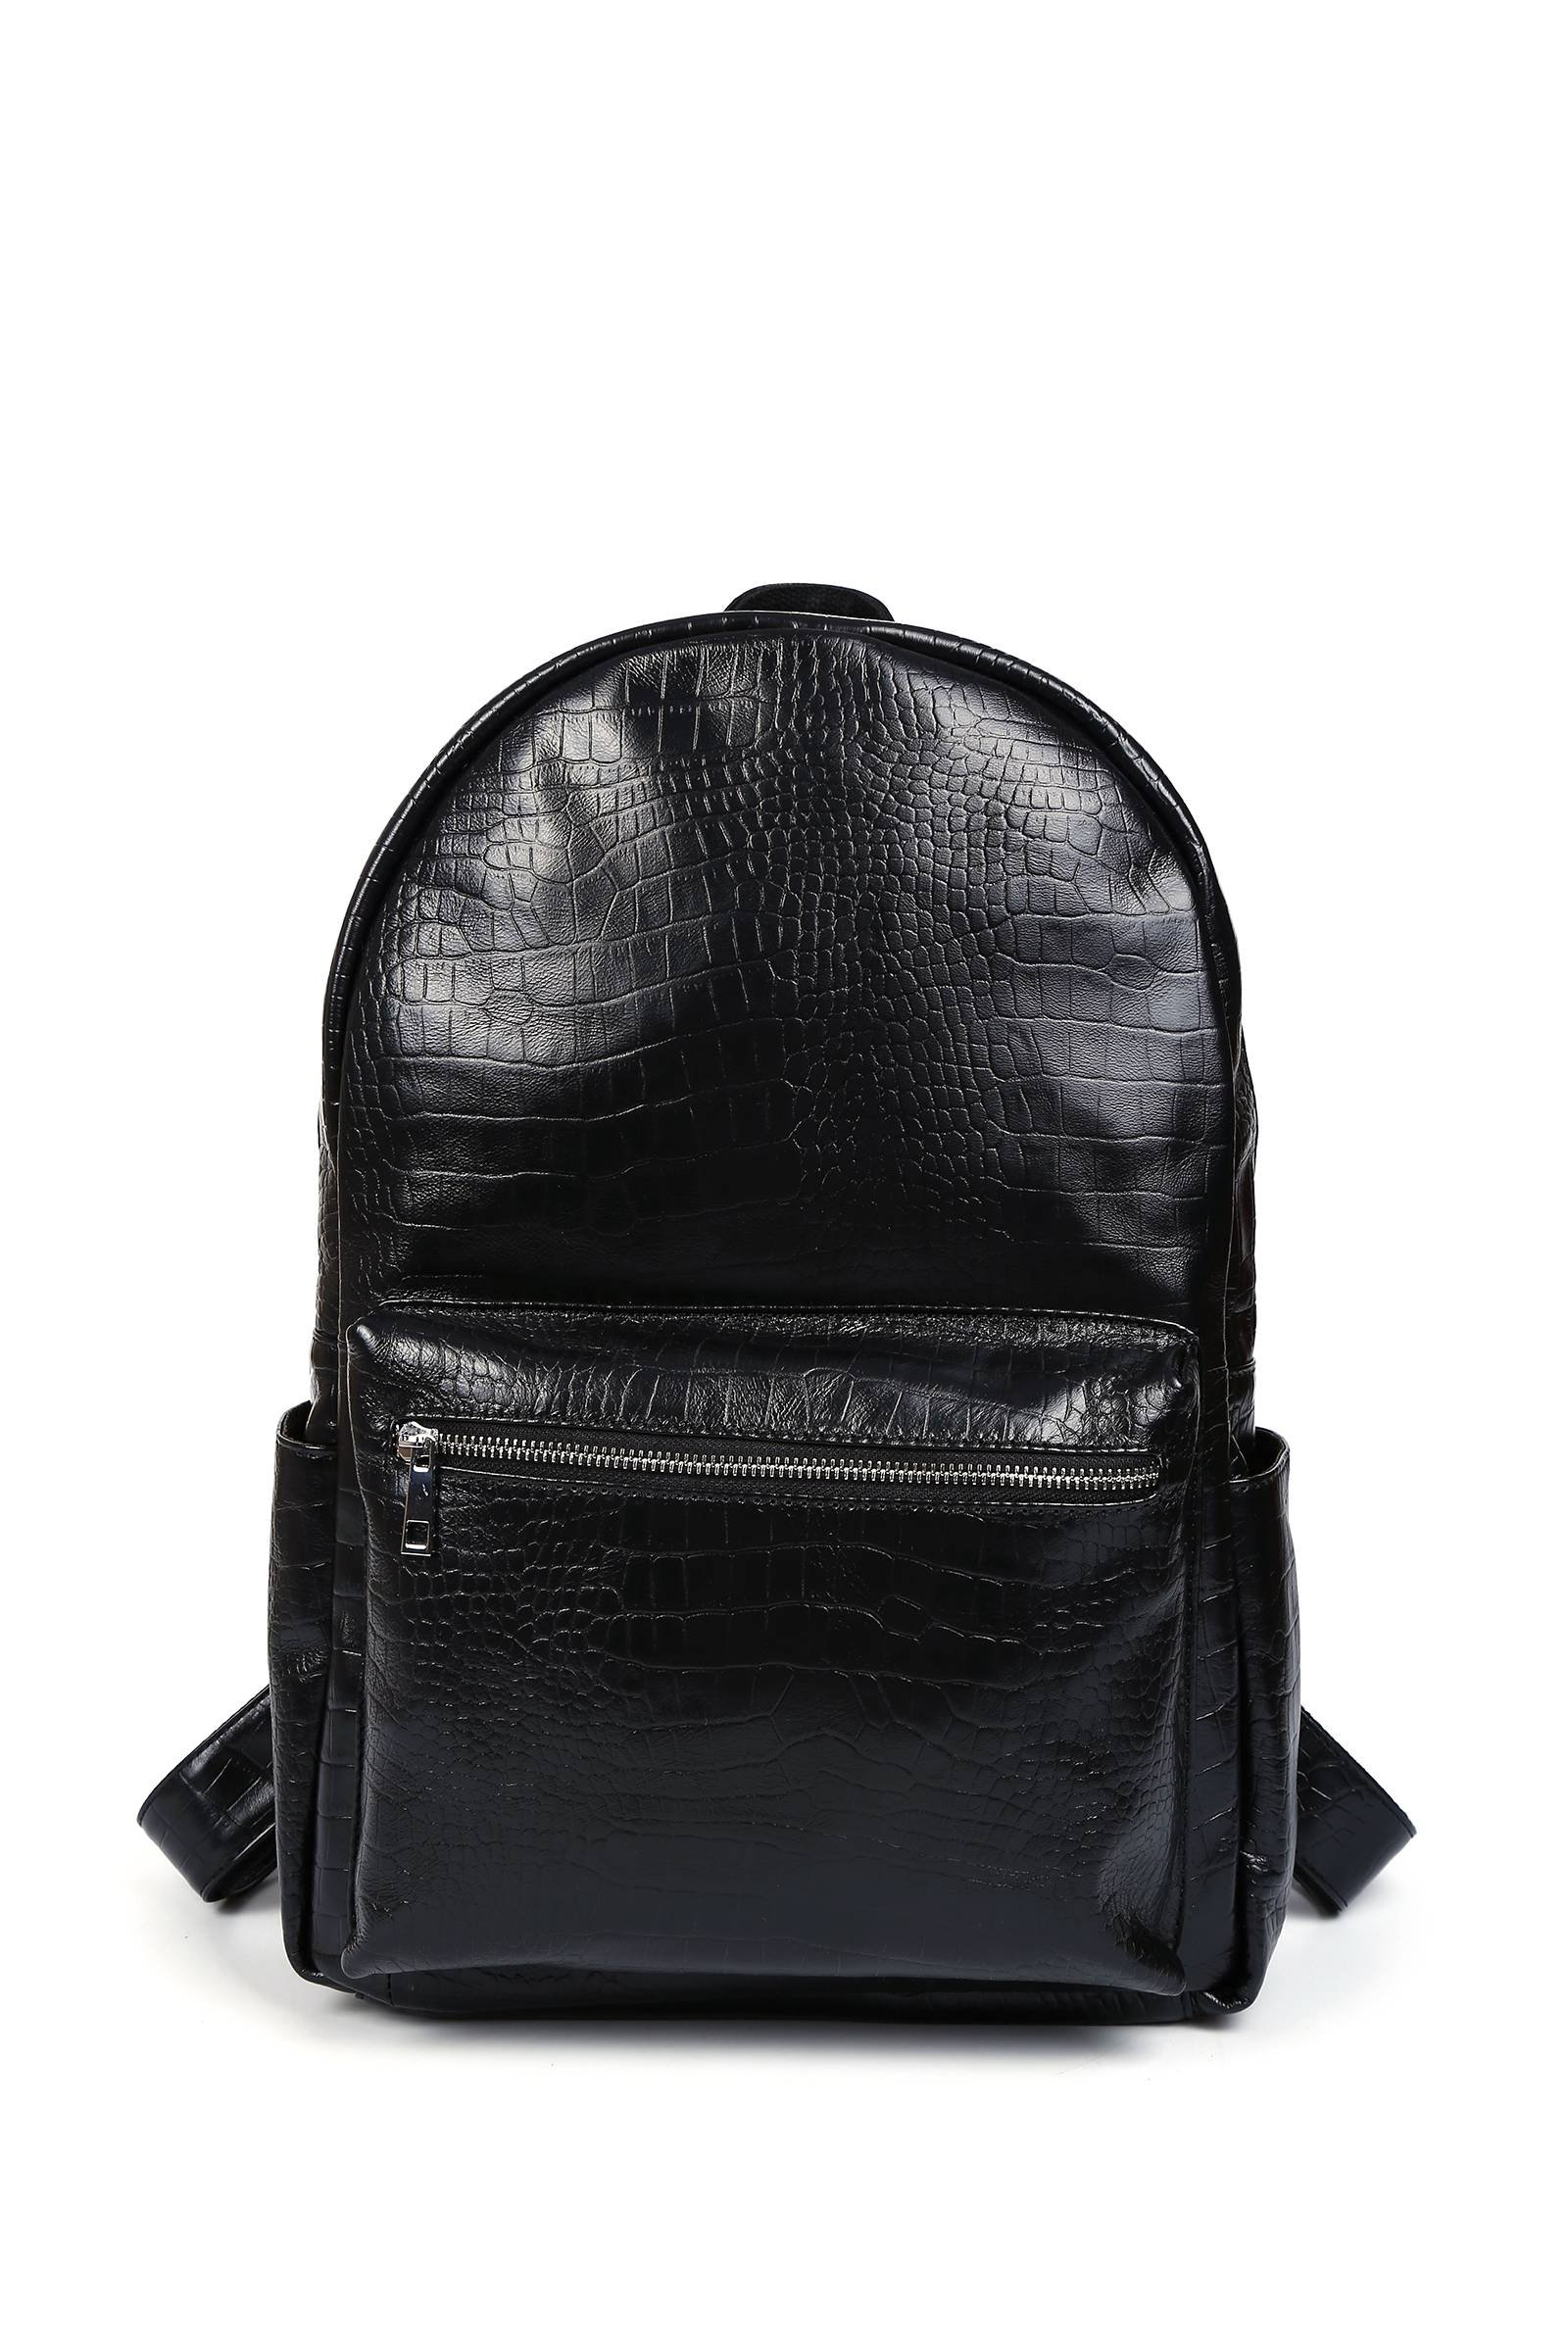 Leather Backpack for Women College School Bag Laptop Backpacks Girls Day Pack (Black)